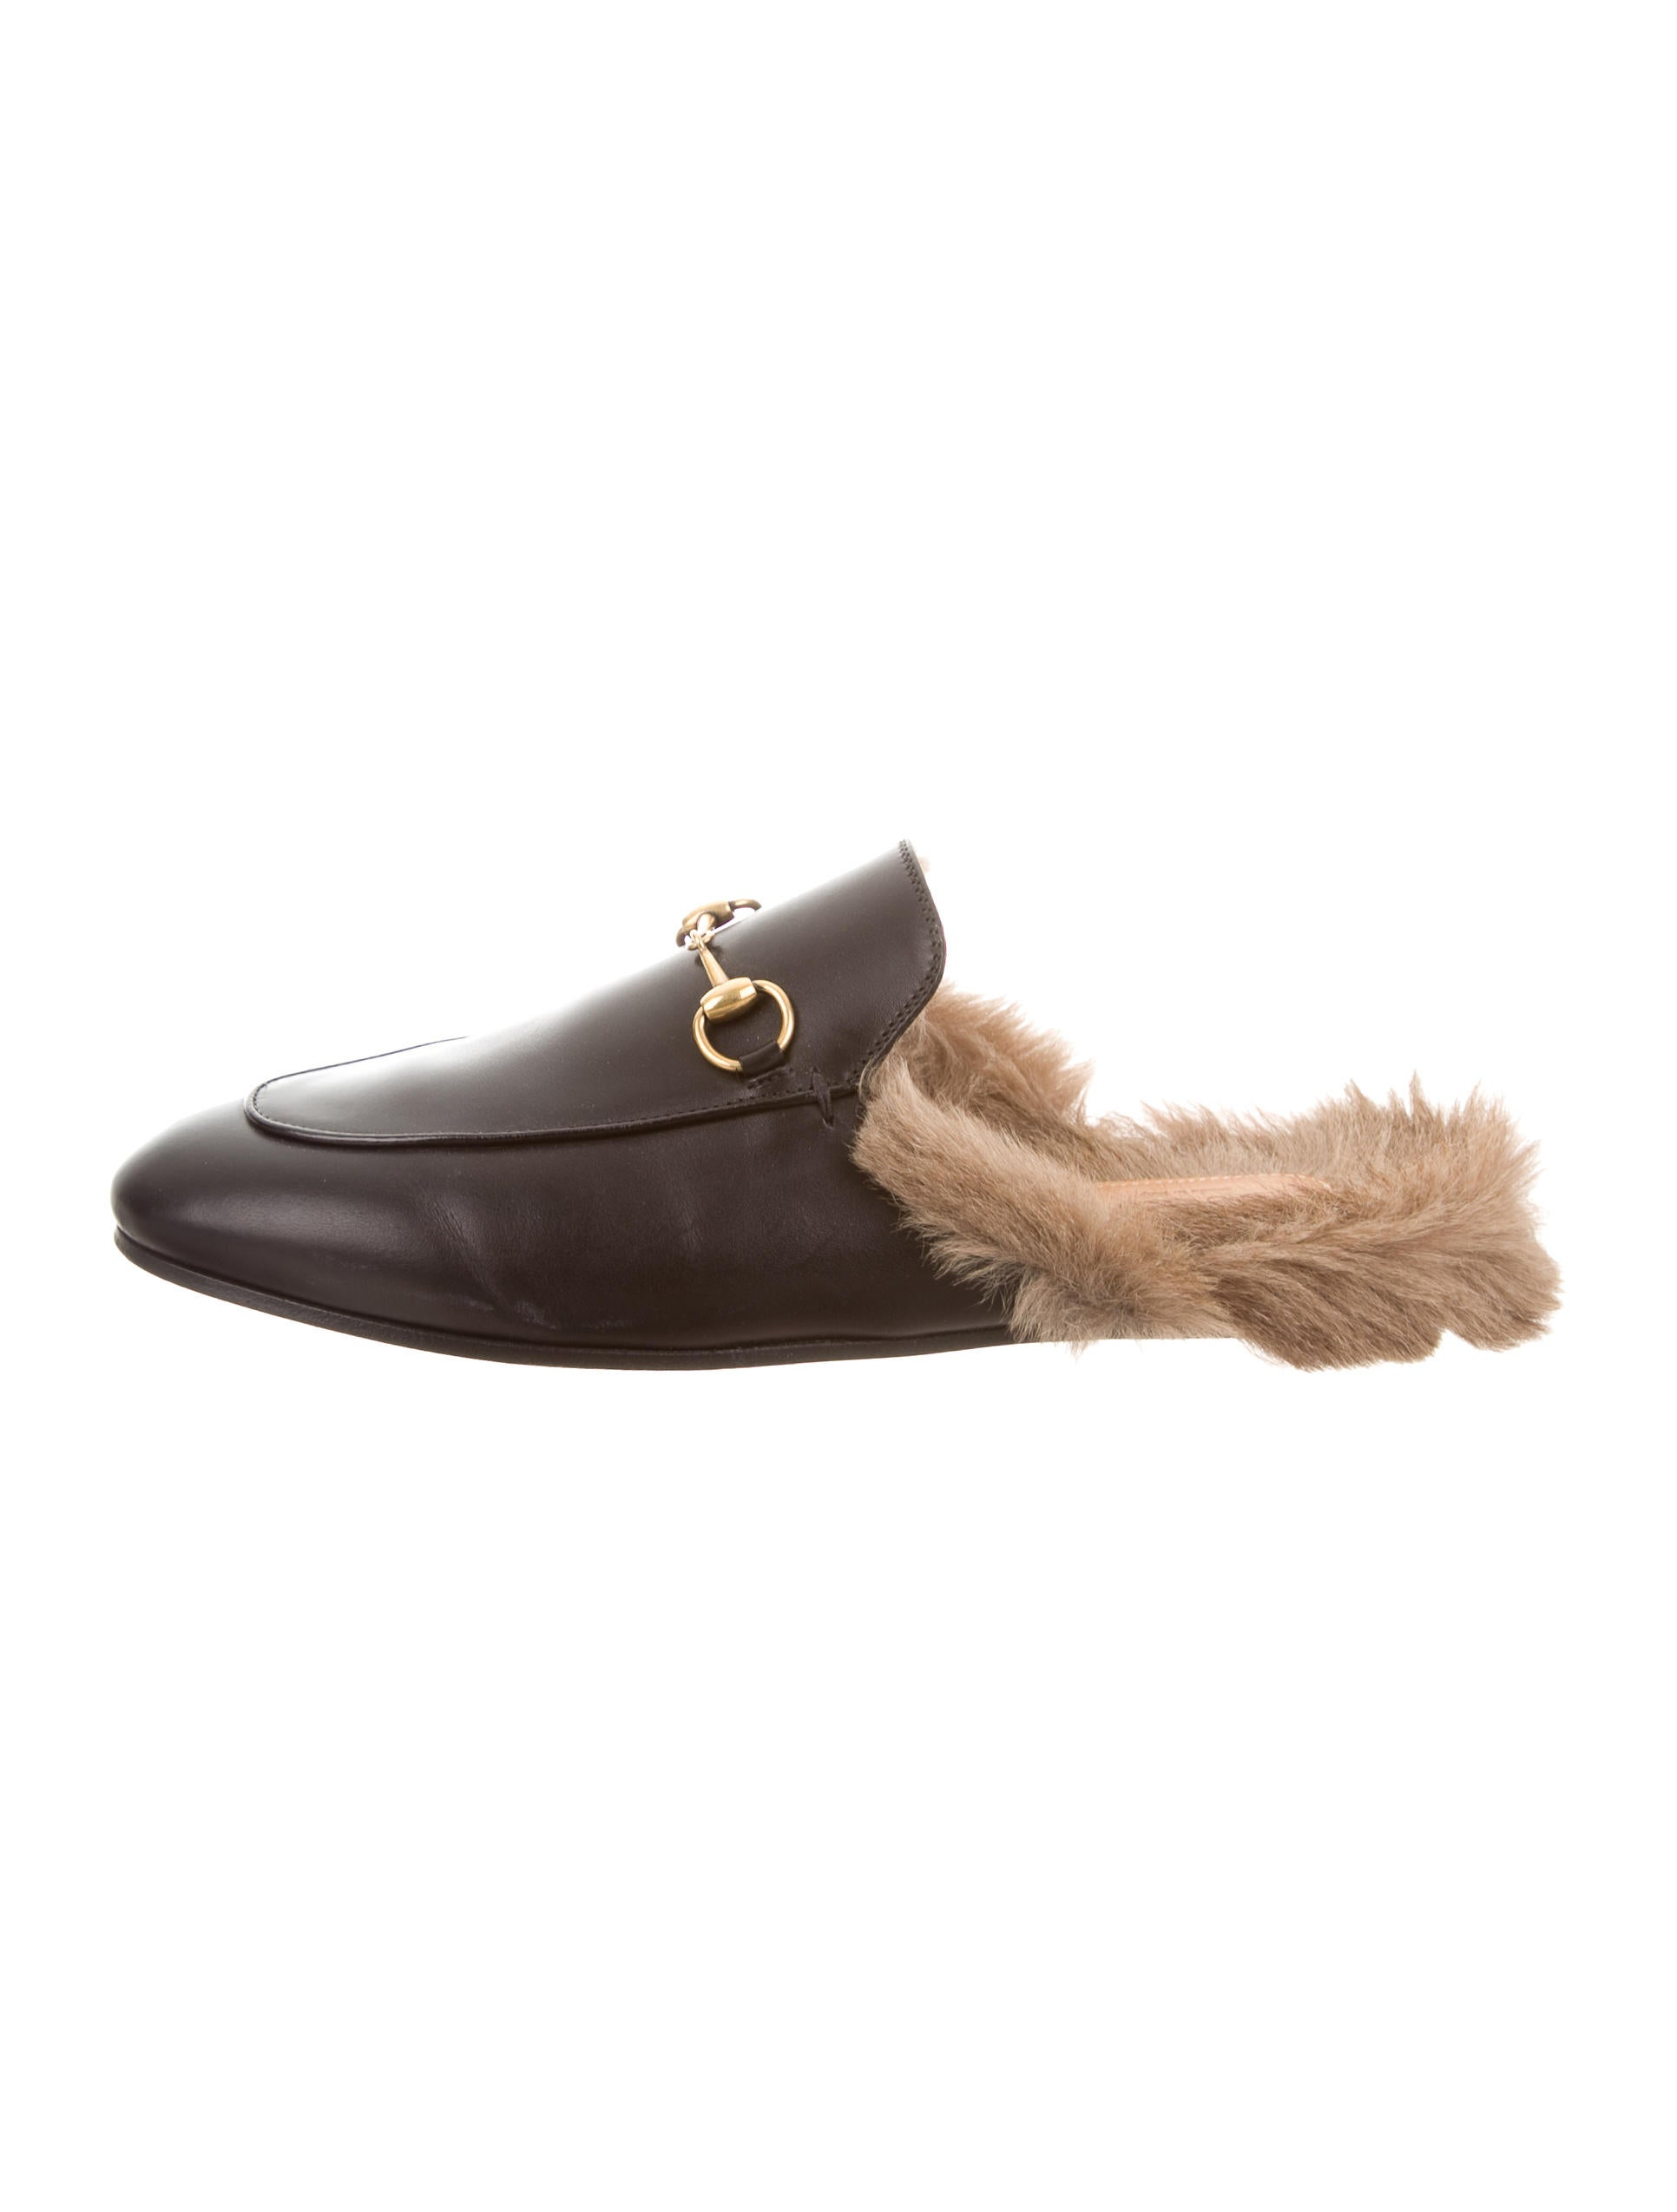 Gucci 2017 Princetown Fur Lined Mules Shoes Guc132559